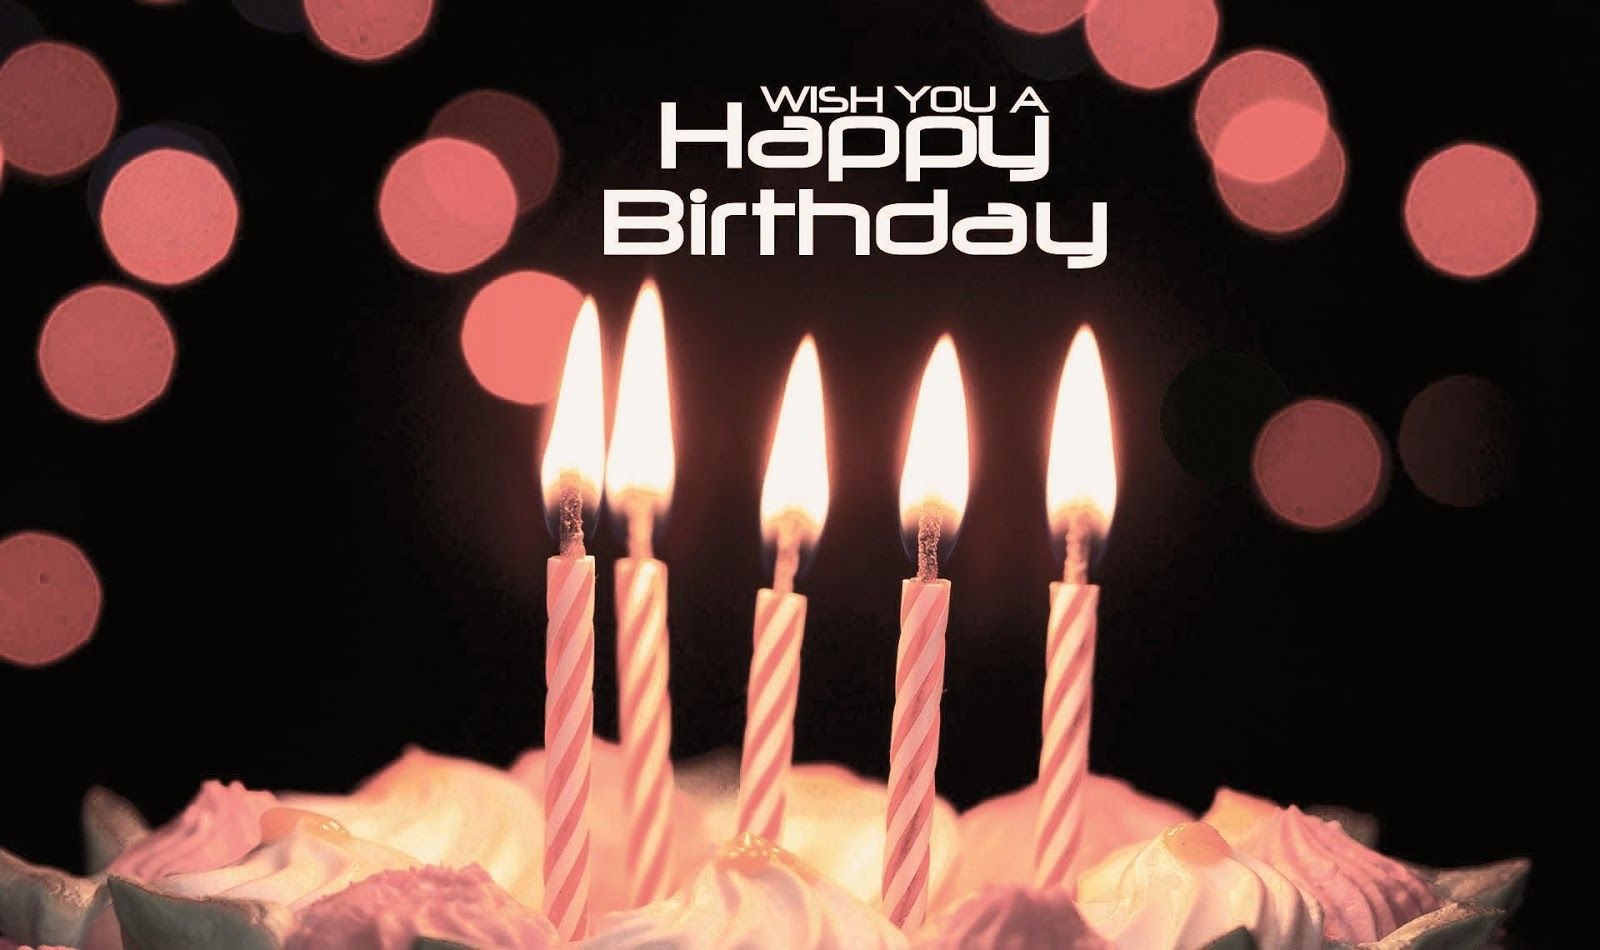 Happy Birthday Messages Birthday Messages Pinterest Happy Wishing You A Happy Birthday Quotes